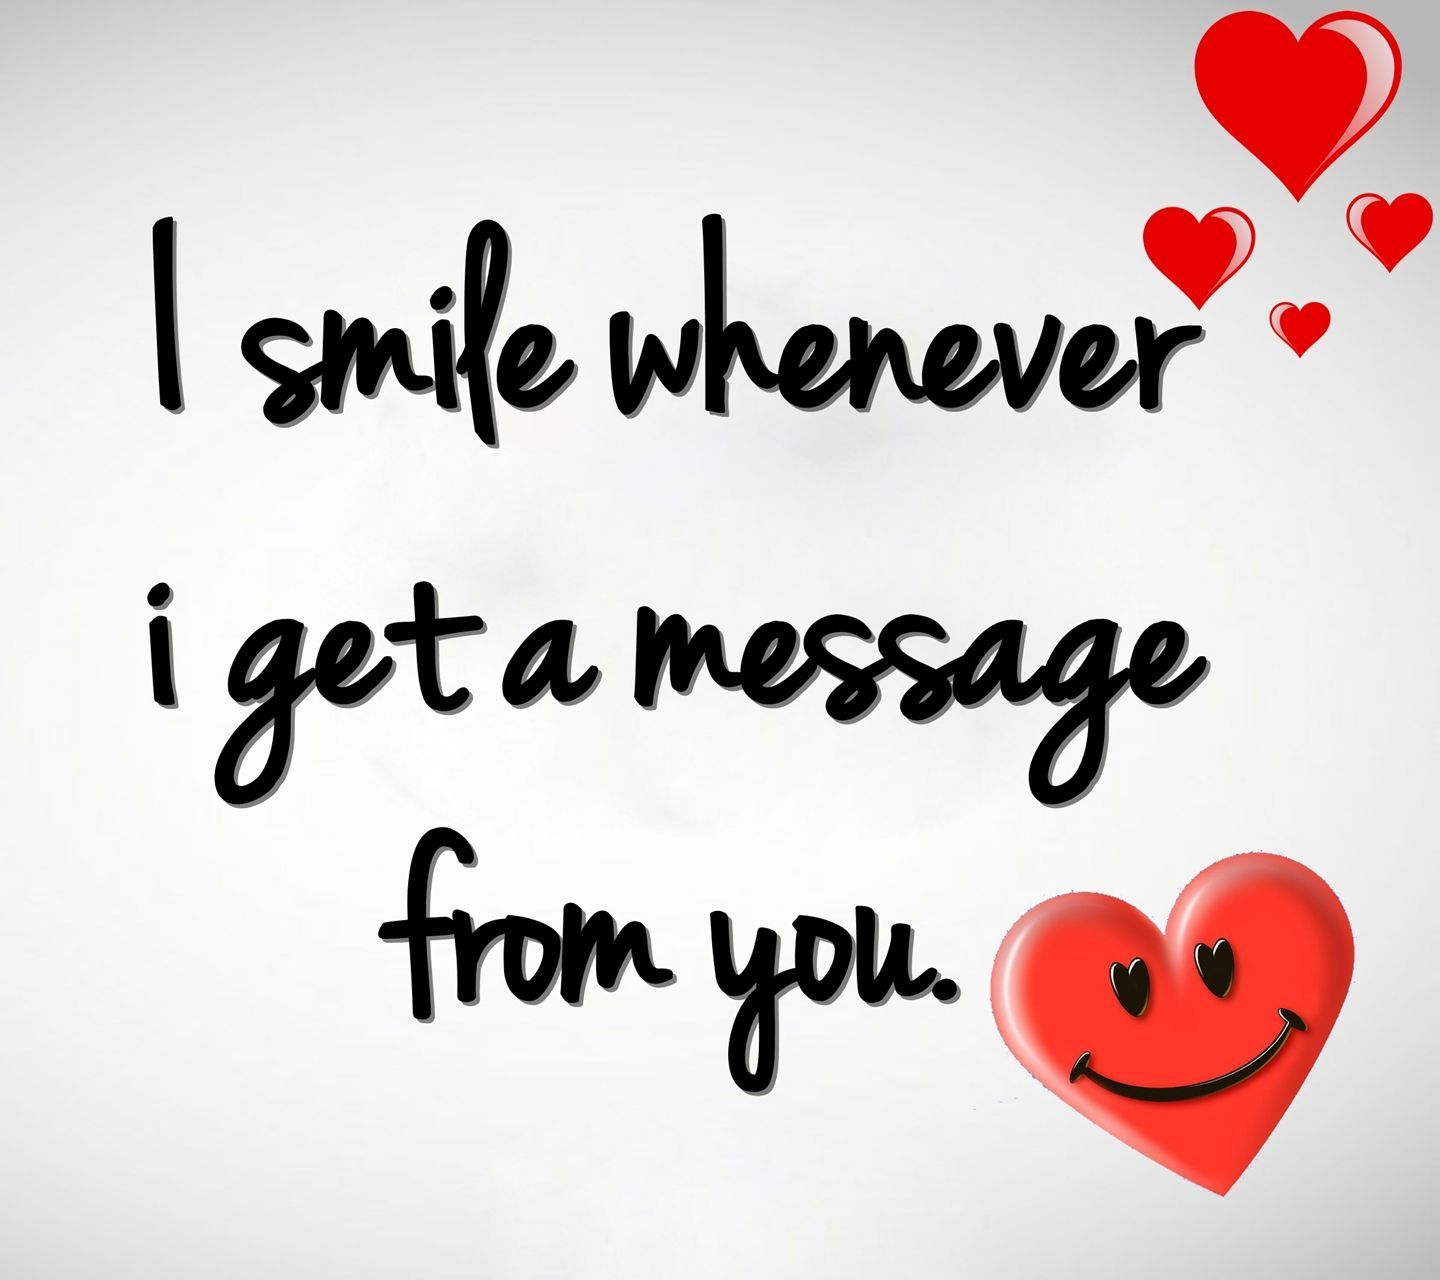 Download Message From You1440x12801280x1440freehotmobile Phone Wallpapers